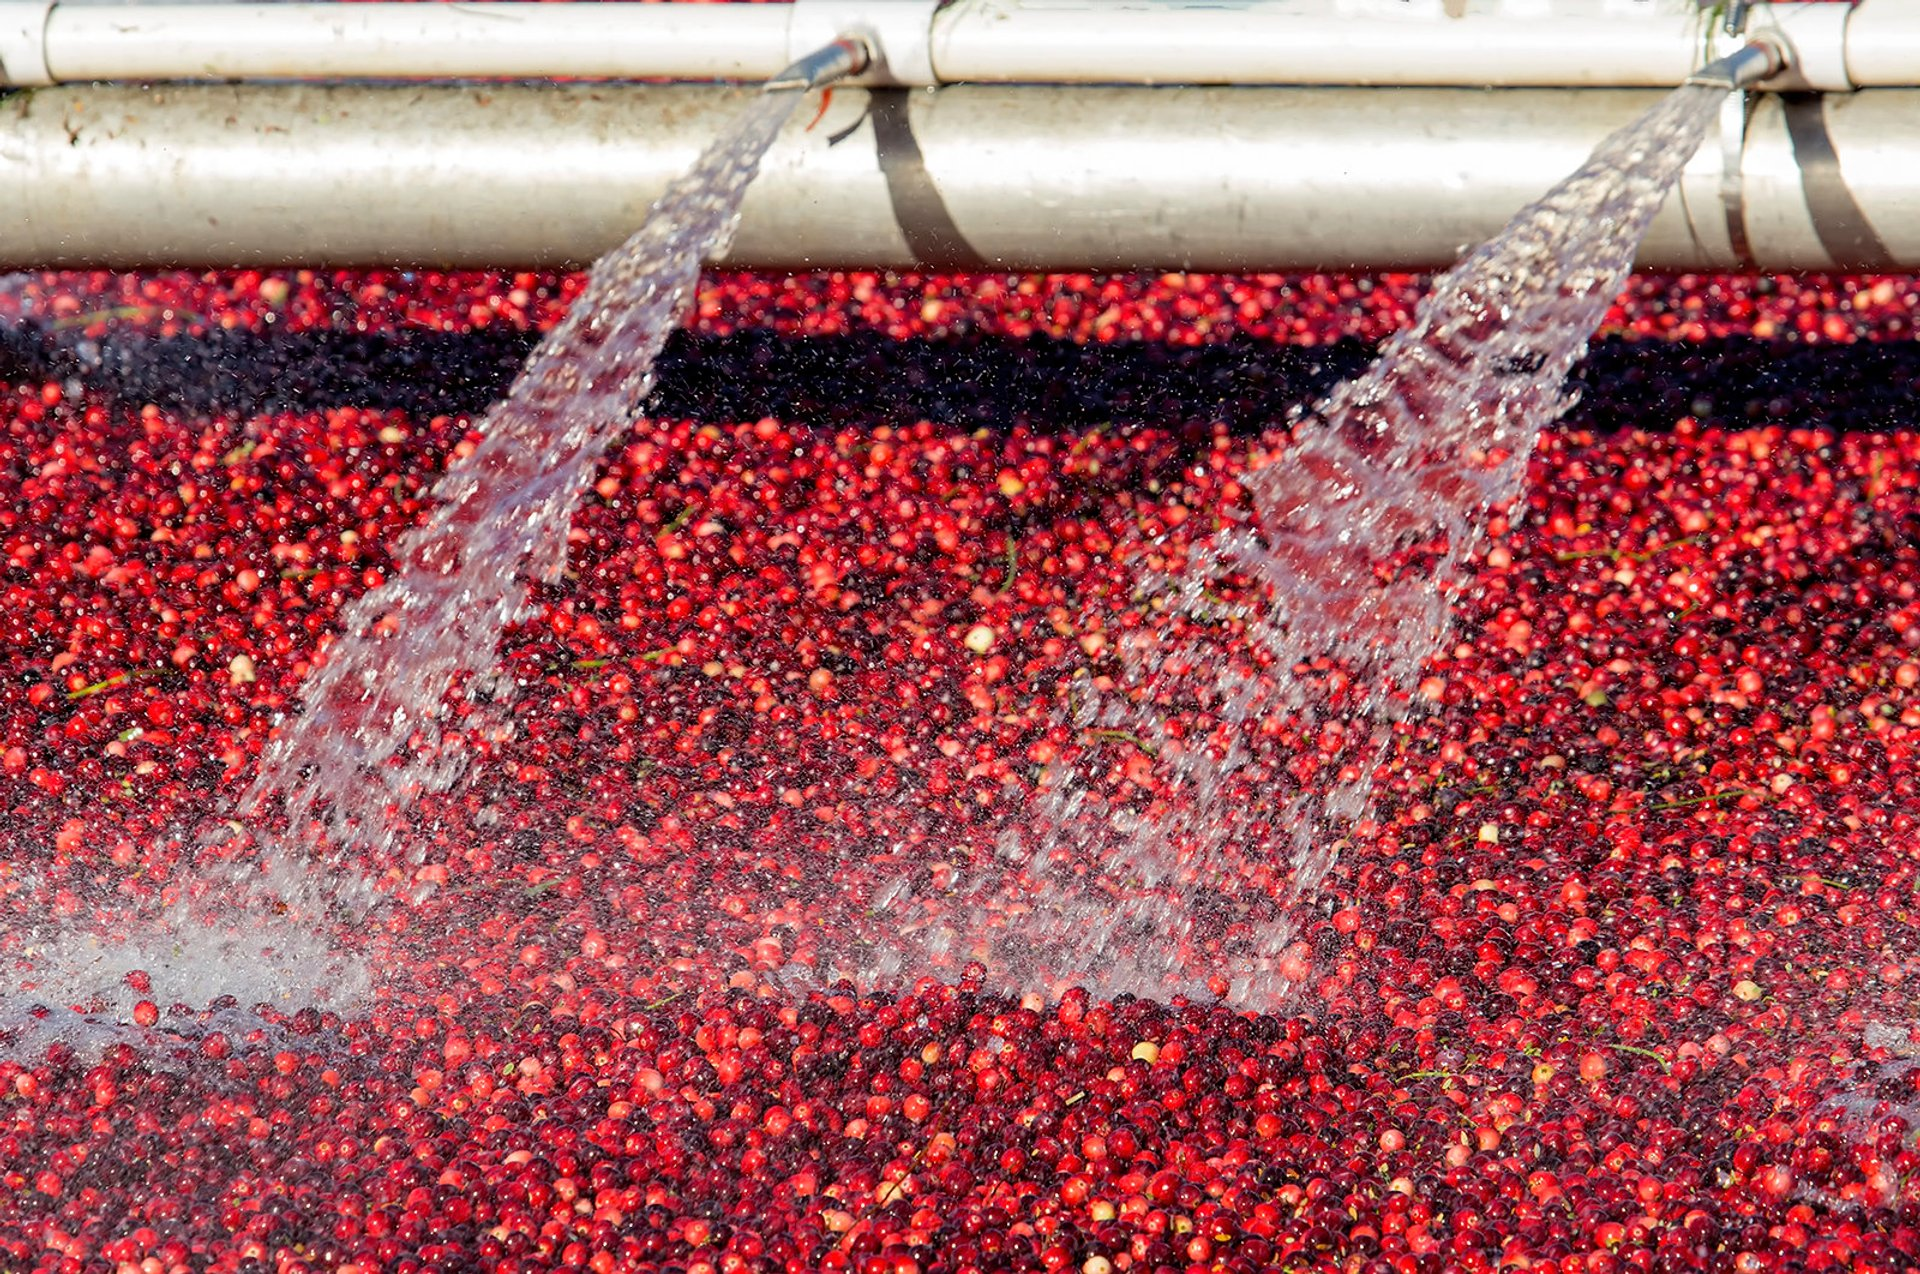 Cranberry harvesting in Richmond 2020